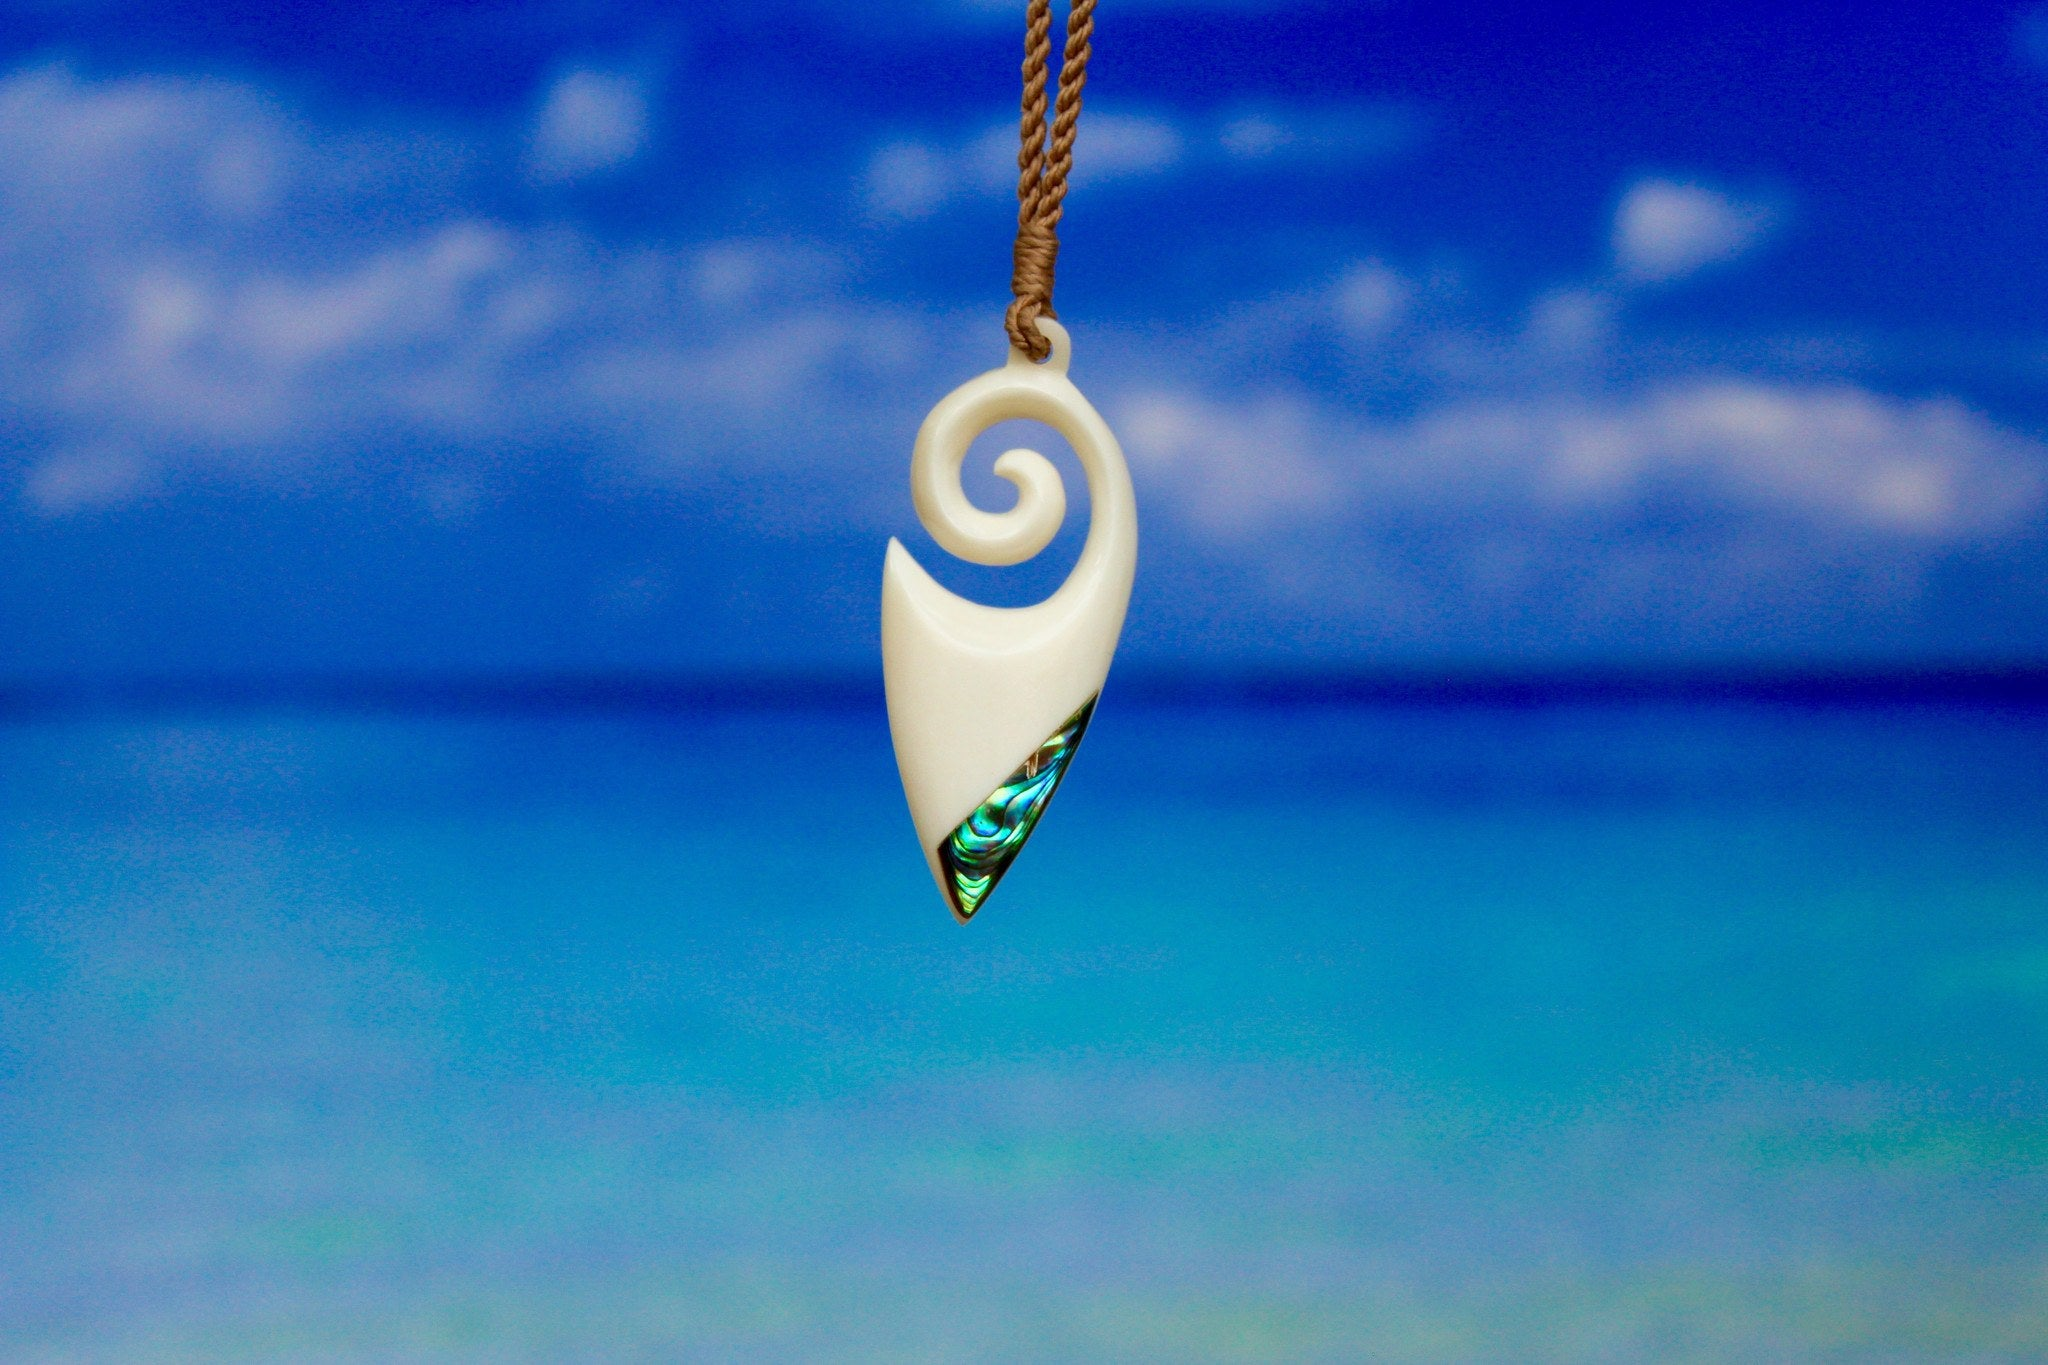 new own for life on jade their is a out journey it they also as s child necklace resembles blog koru symbolises beautiful fitting children which extremely set necklaces baby buying the